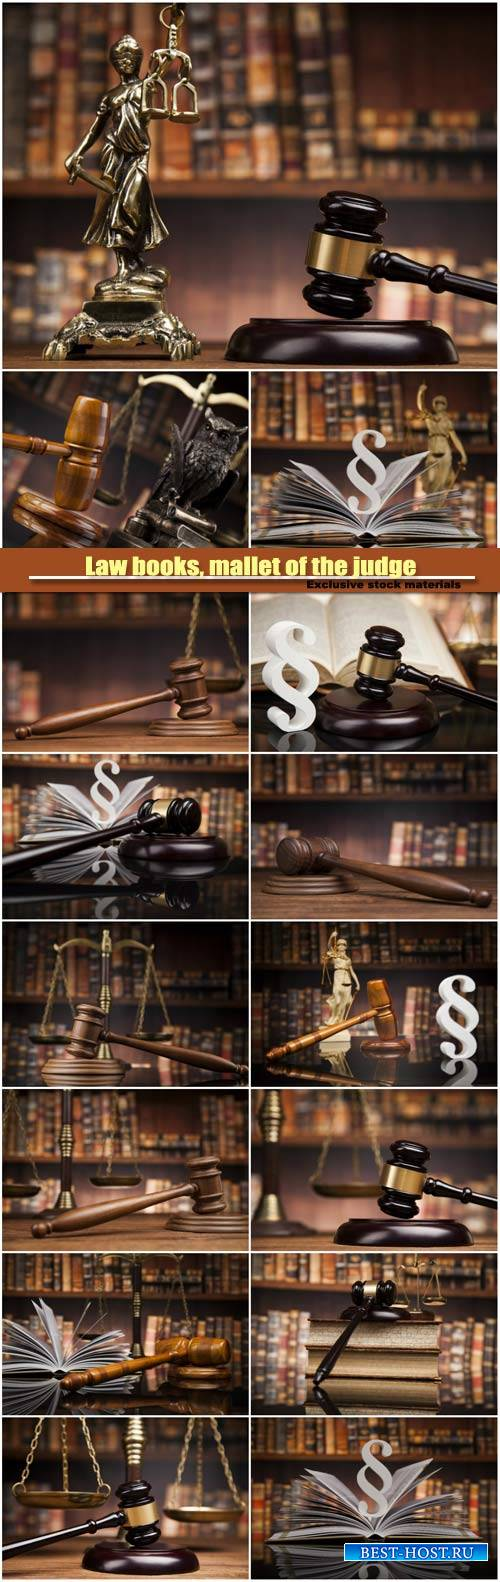 Law books, mallet of the judge, paragraph justice concept, law theme